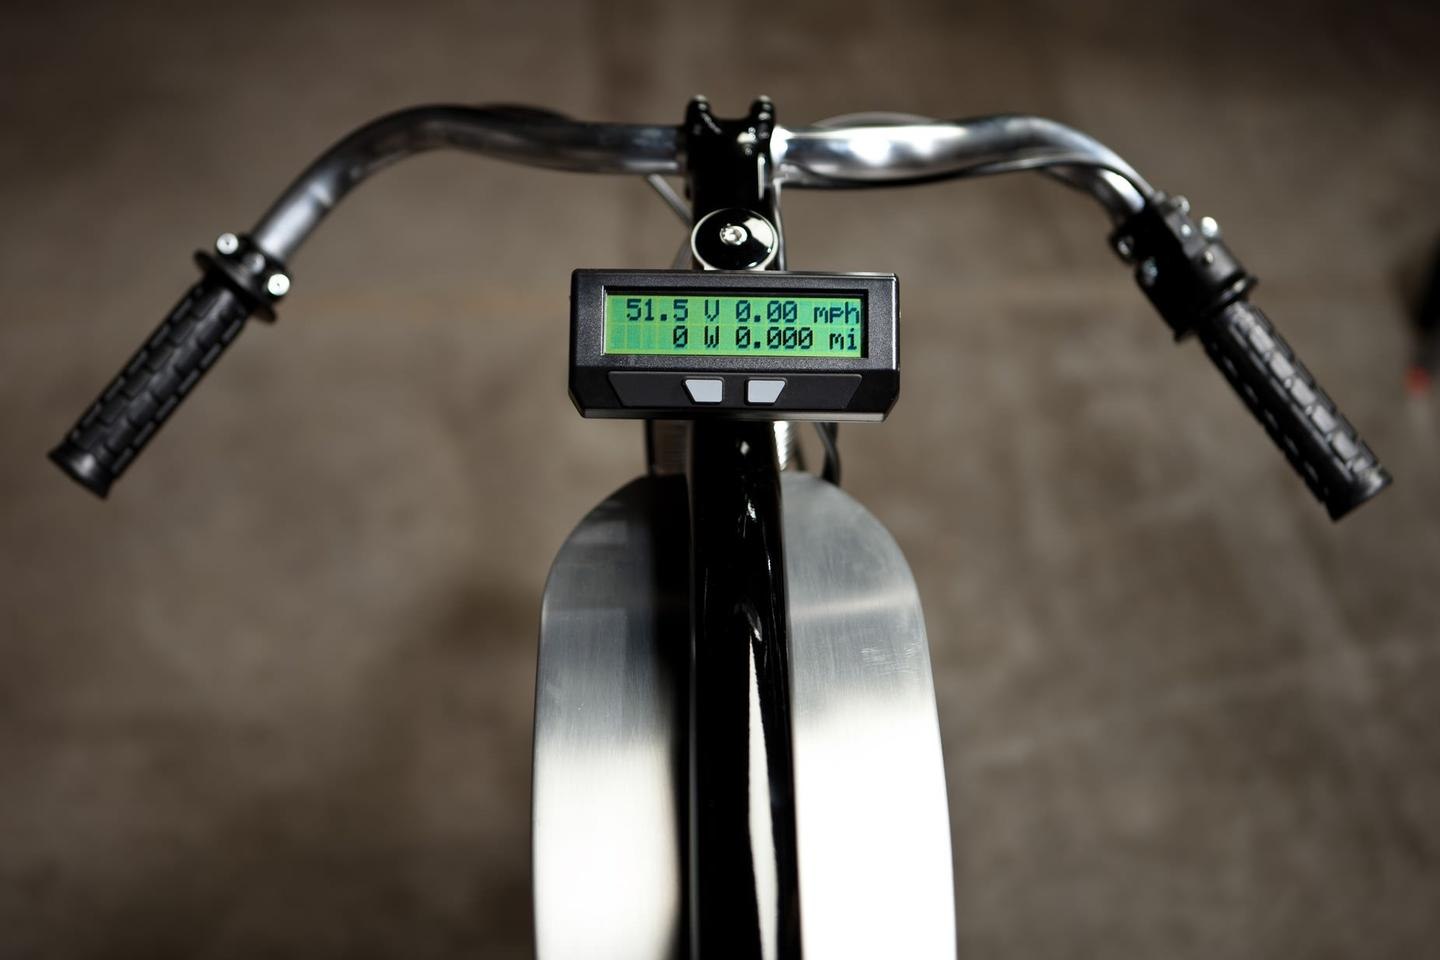 Analyst E-bike computer provides important riding information such as battery range, speed, distance and net energy